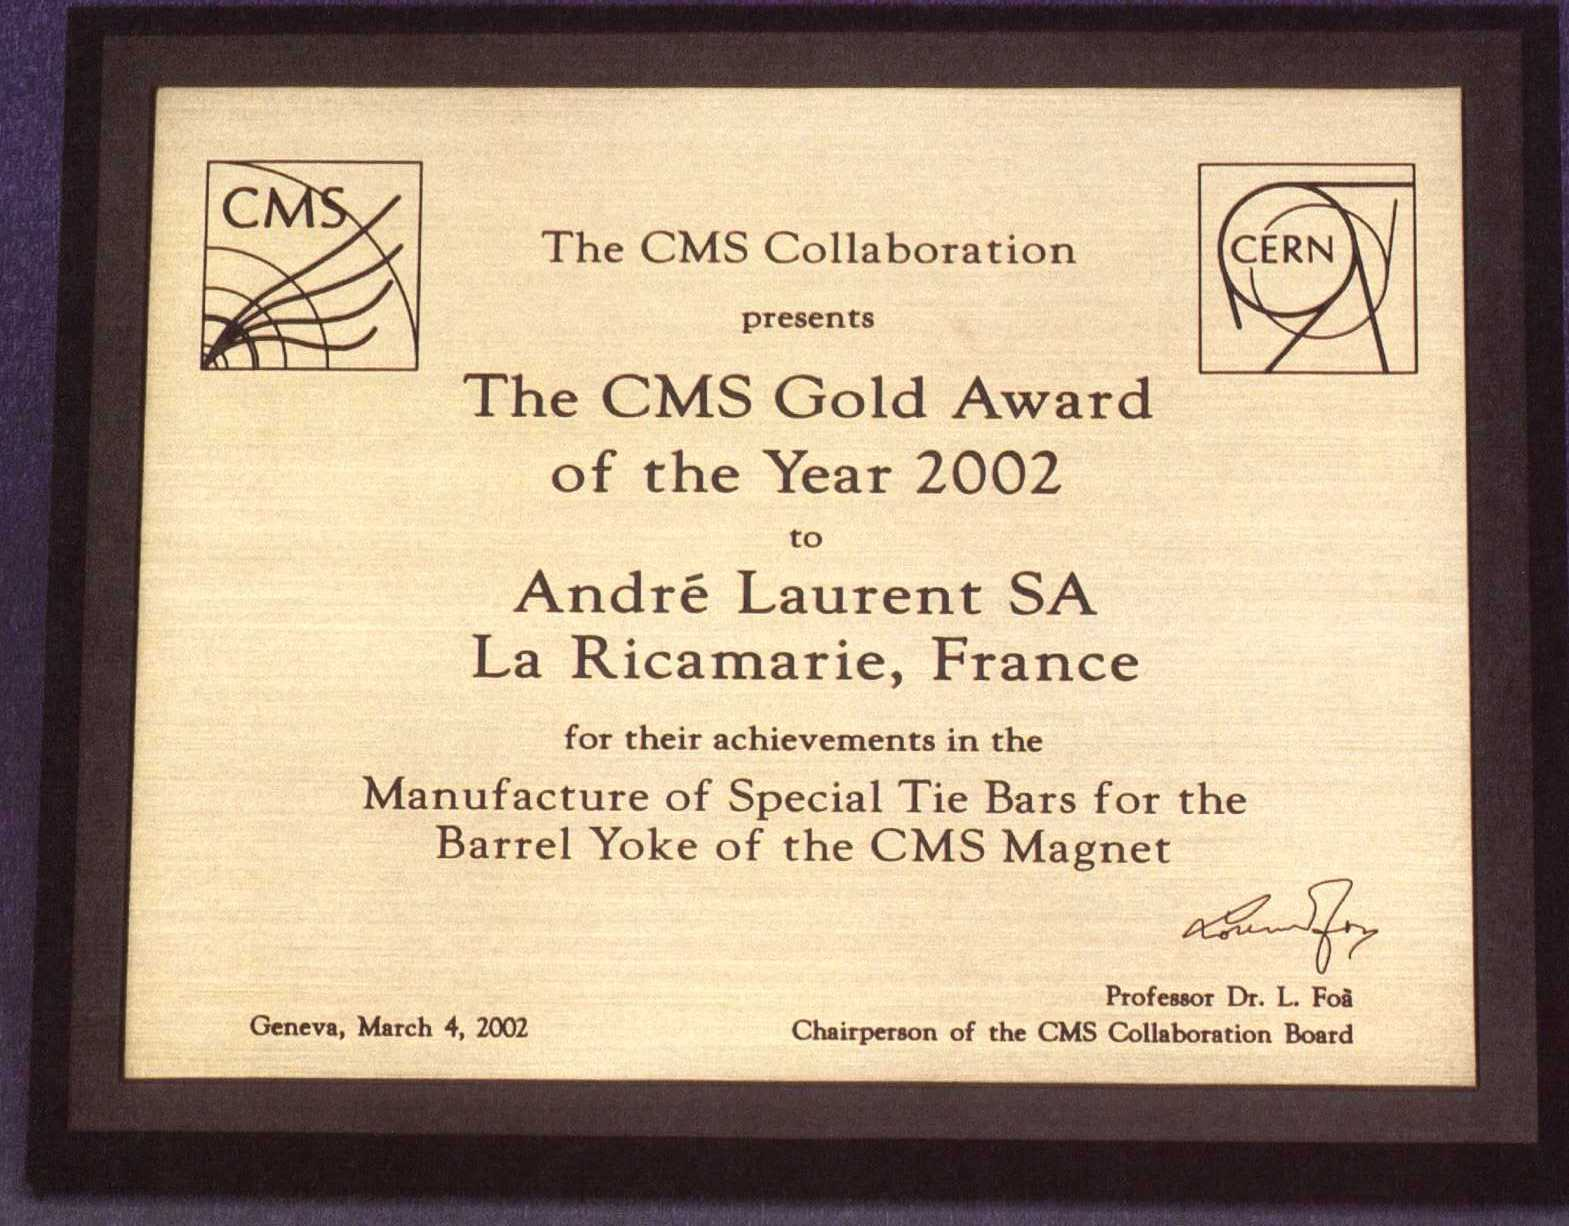 Gold Award for Special Tie Bars for Barrel Yoke (CMS MAGNET)